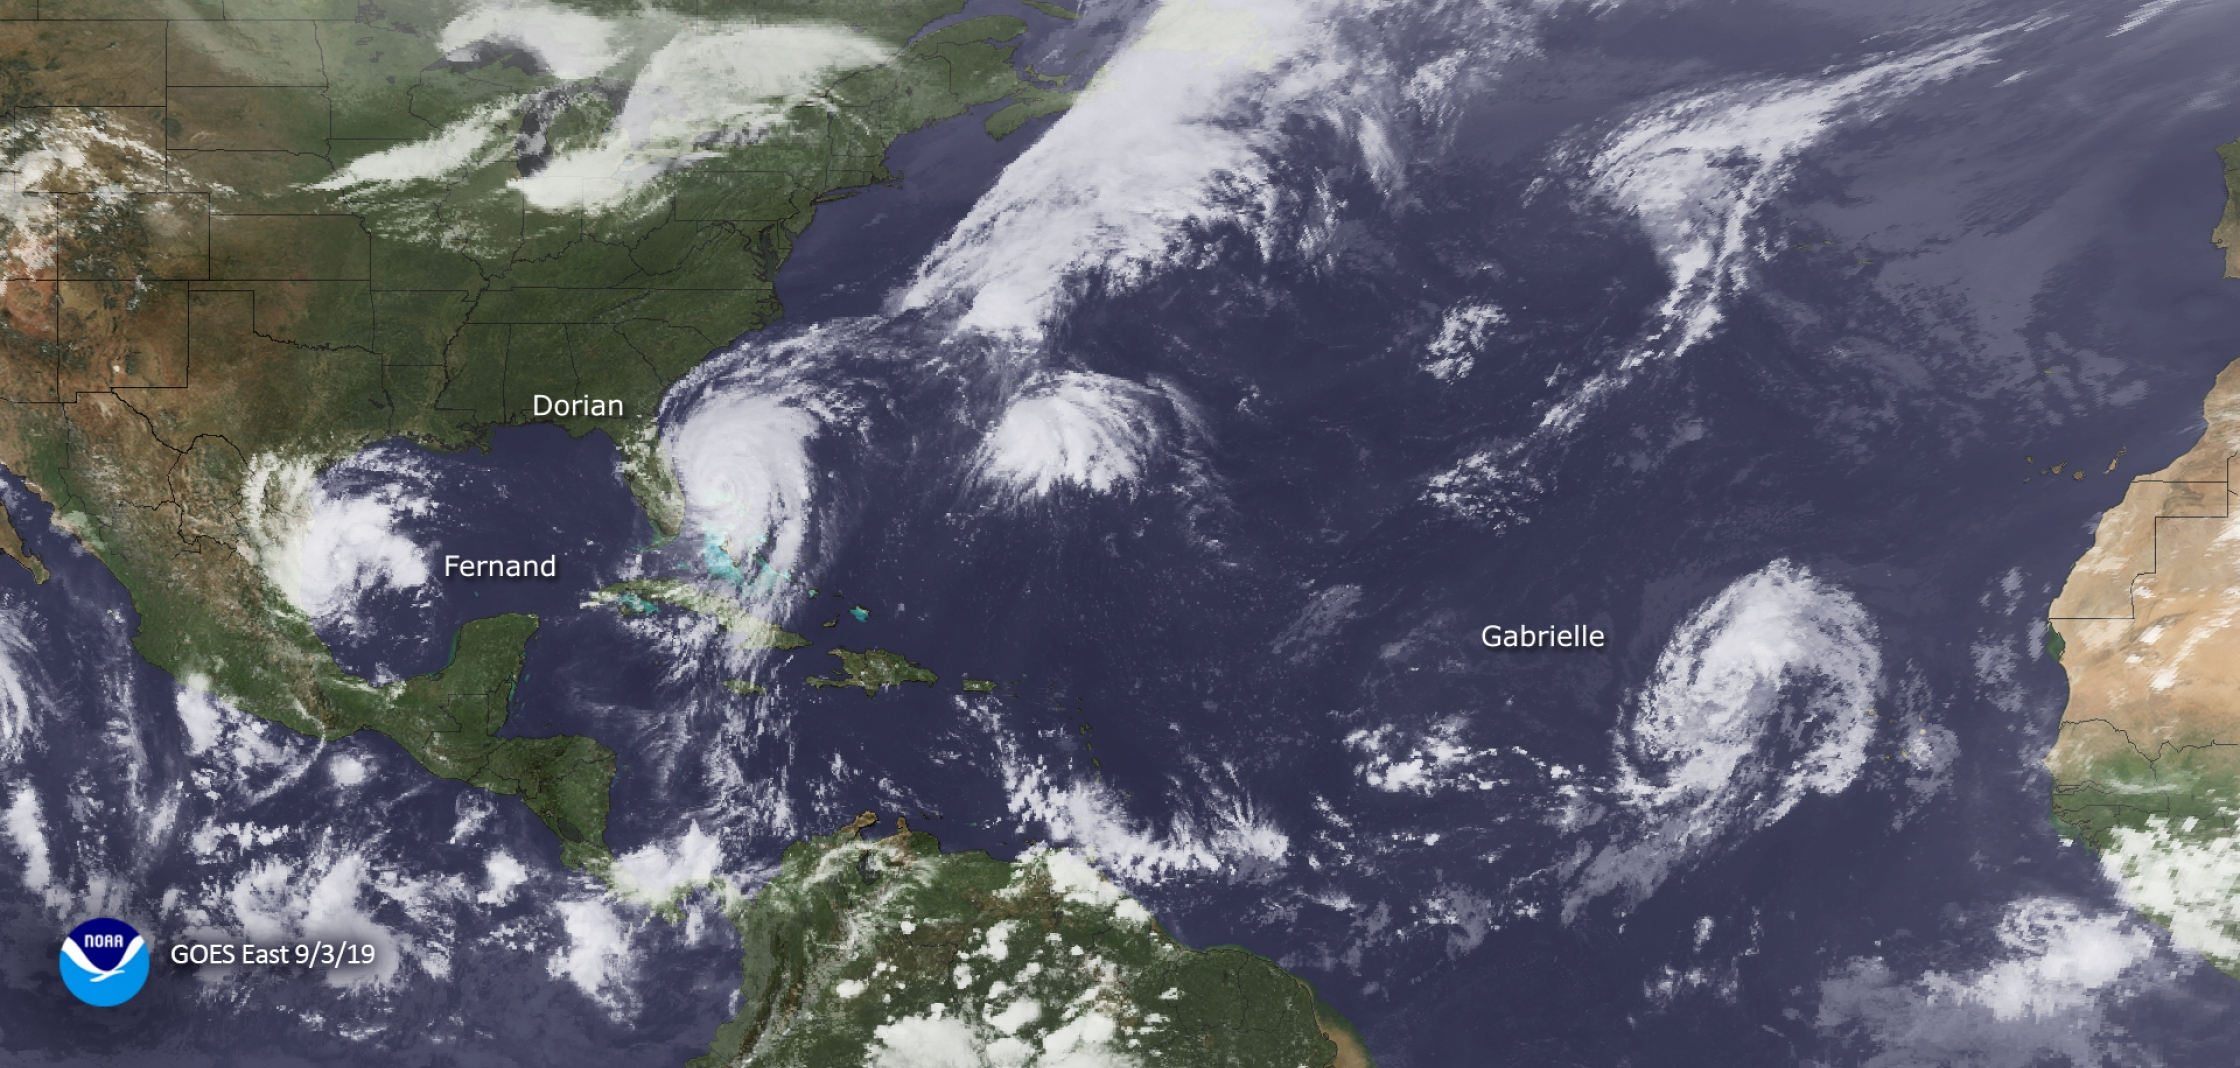 photo:NOAA Satellites;desc:GOES-East satellite captured these three hurricanes in the Gulf and Atlantic waters on September 3, 2019: From left to right we have Fernand, Dorian and Gabrielle. The season tallied 18 named storms, ending with Sebastien.